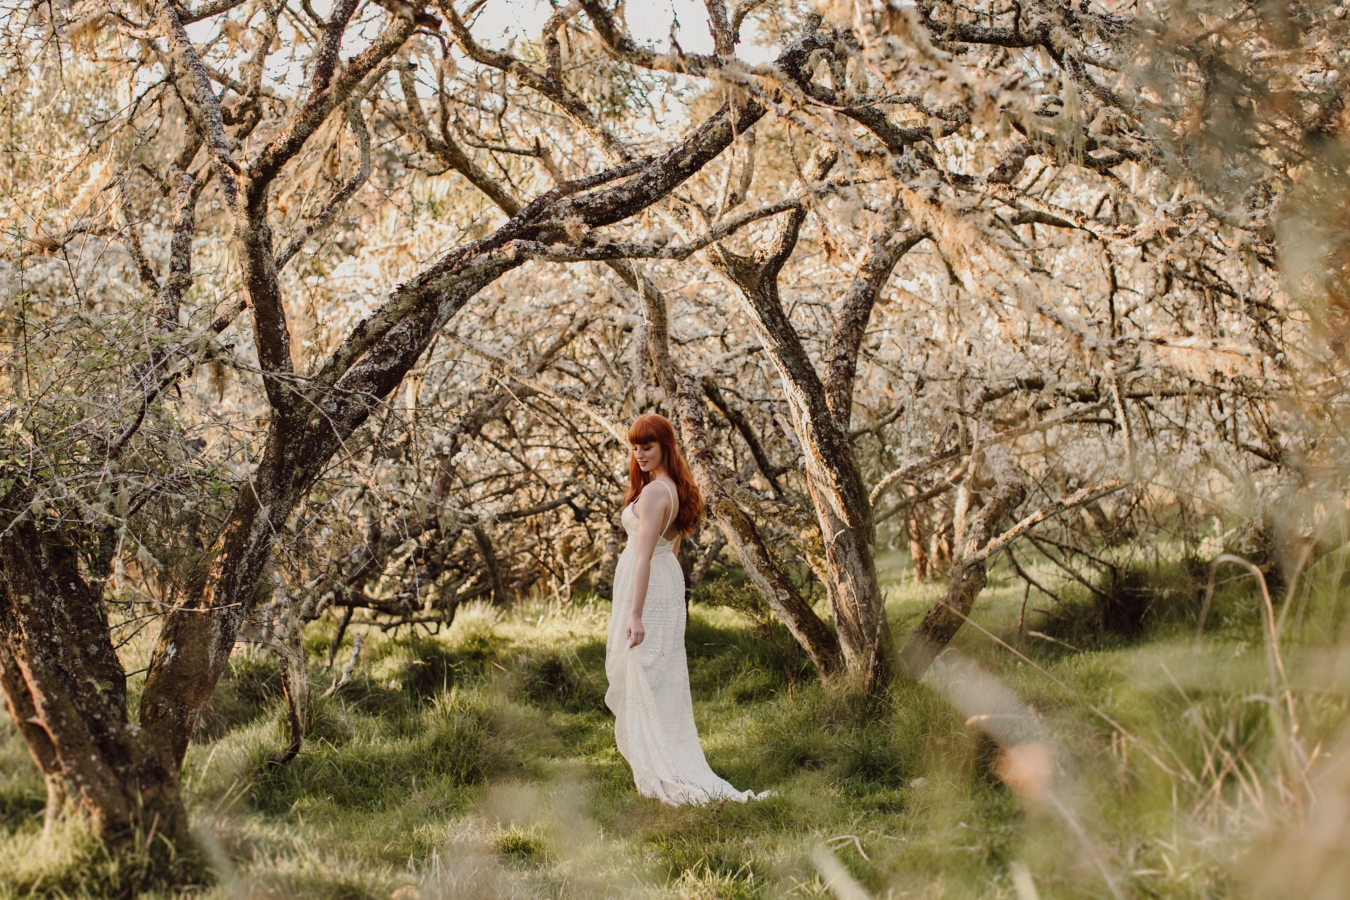 Bride walking away through trees in orchard